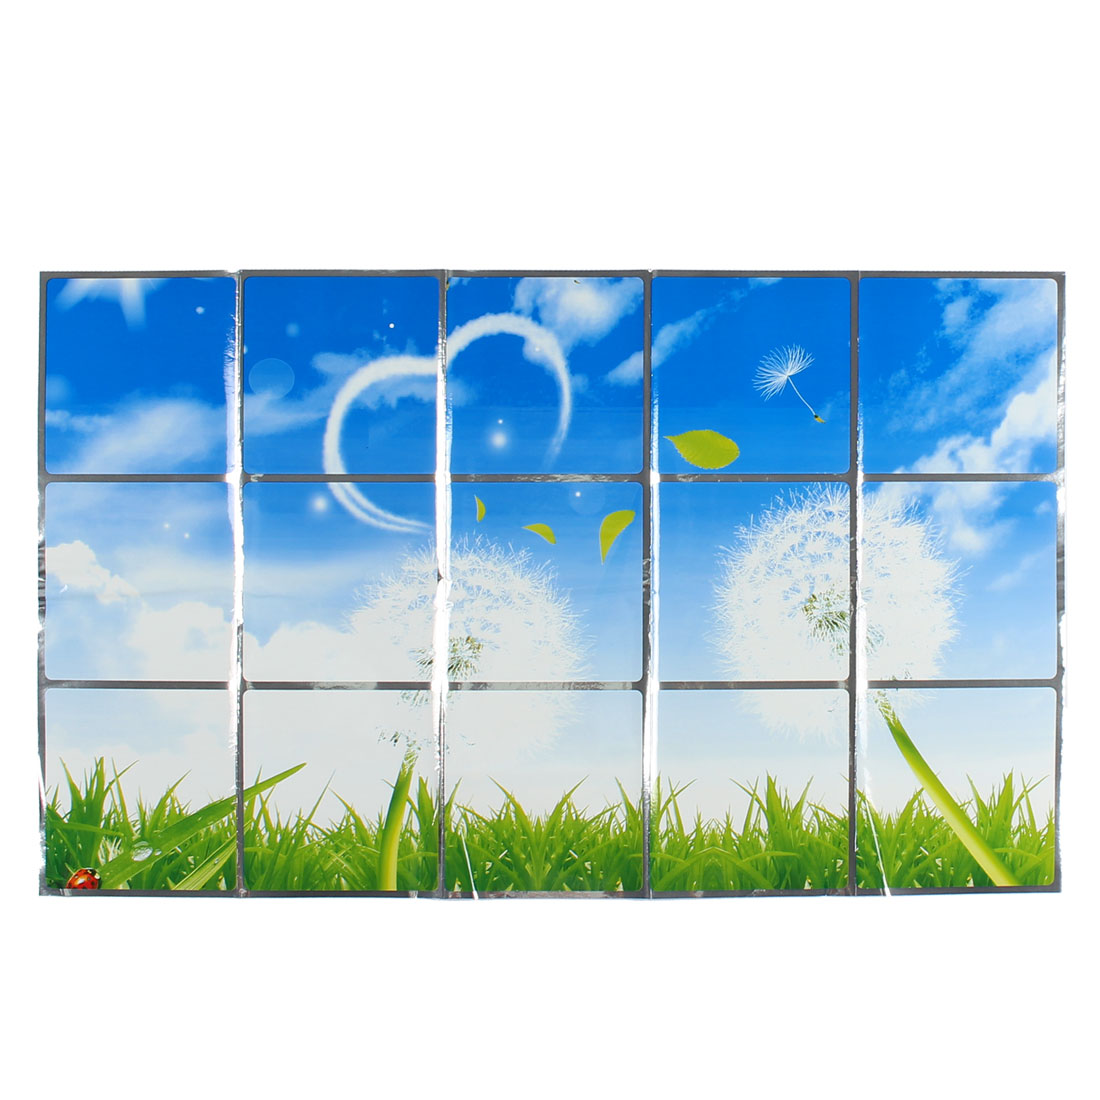 Kitchen Dandelion Pattern Removable Self-adhesive Oilproof Wall Window Sticker 75 x 45cm